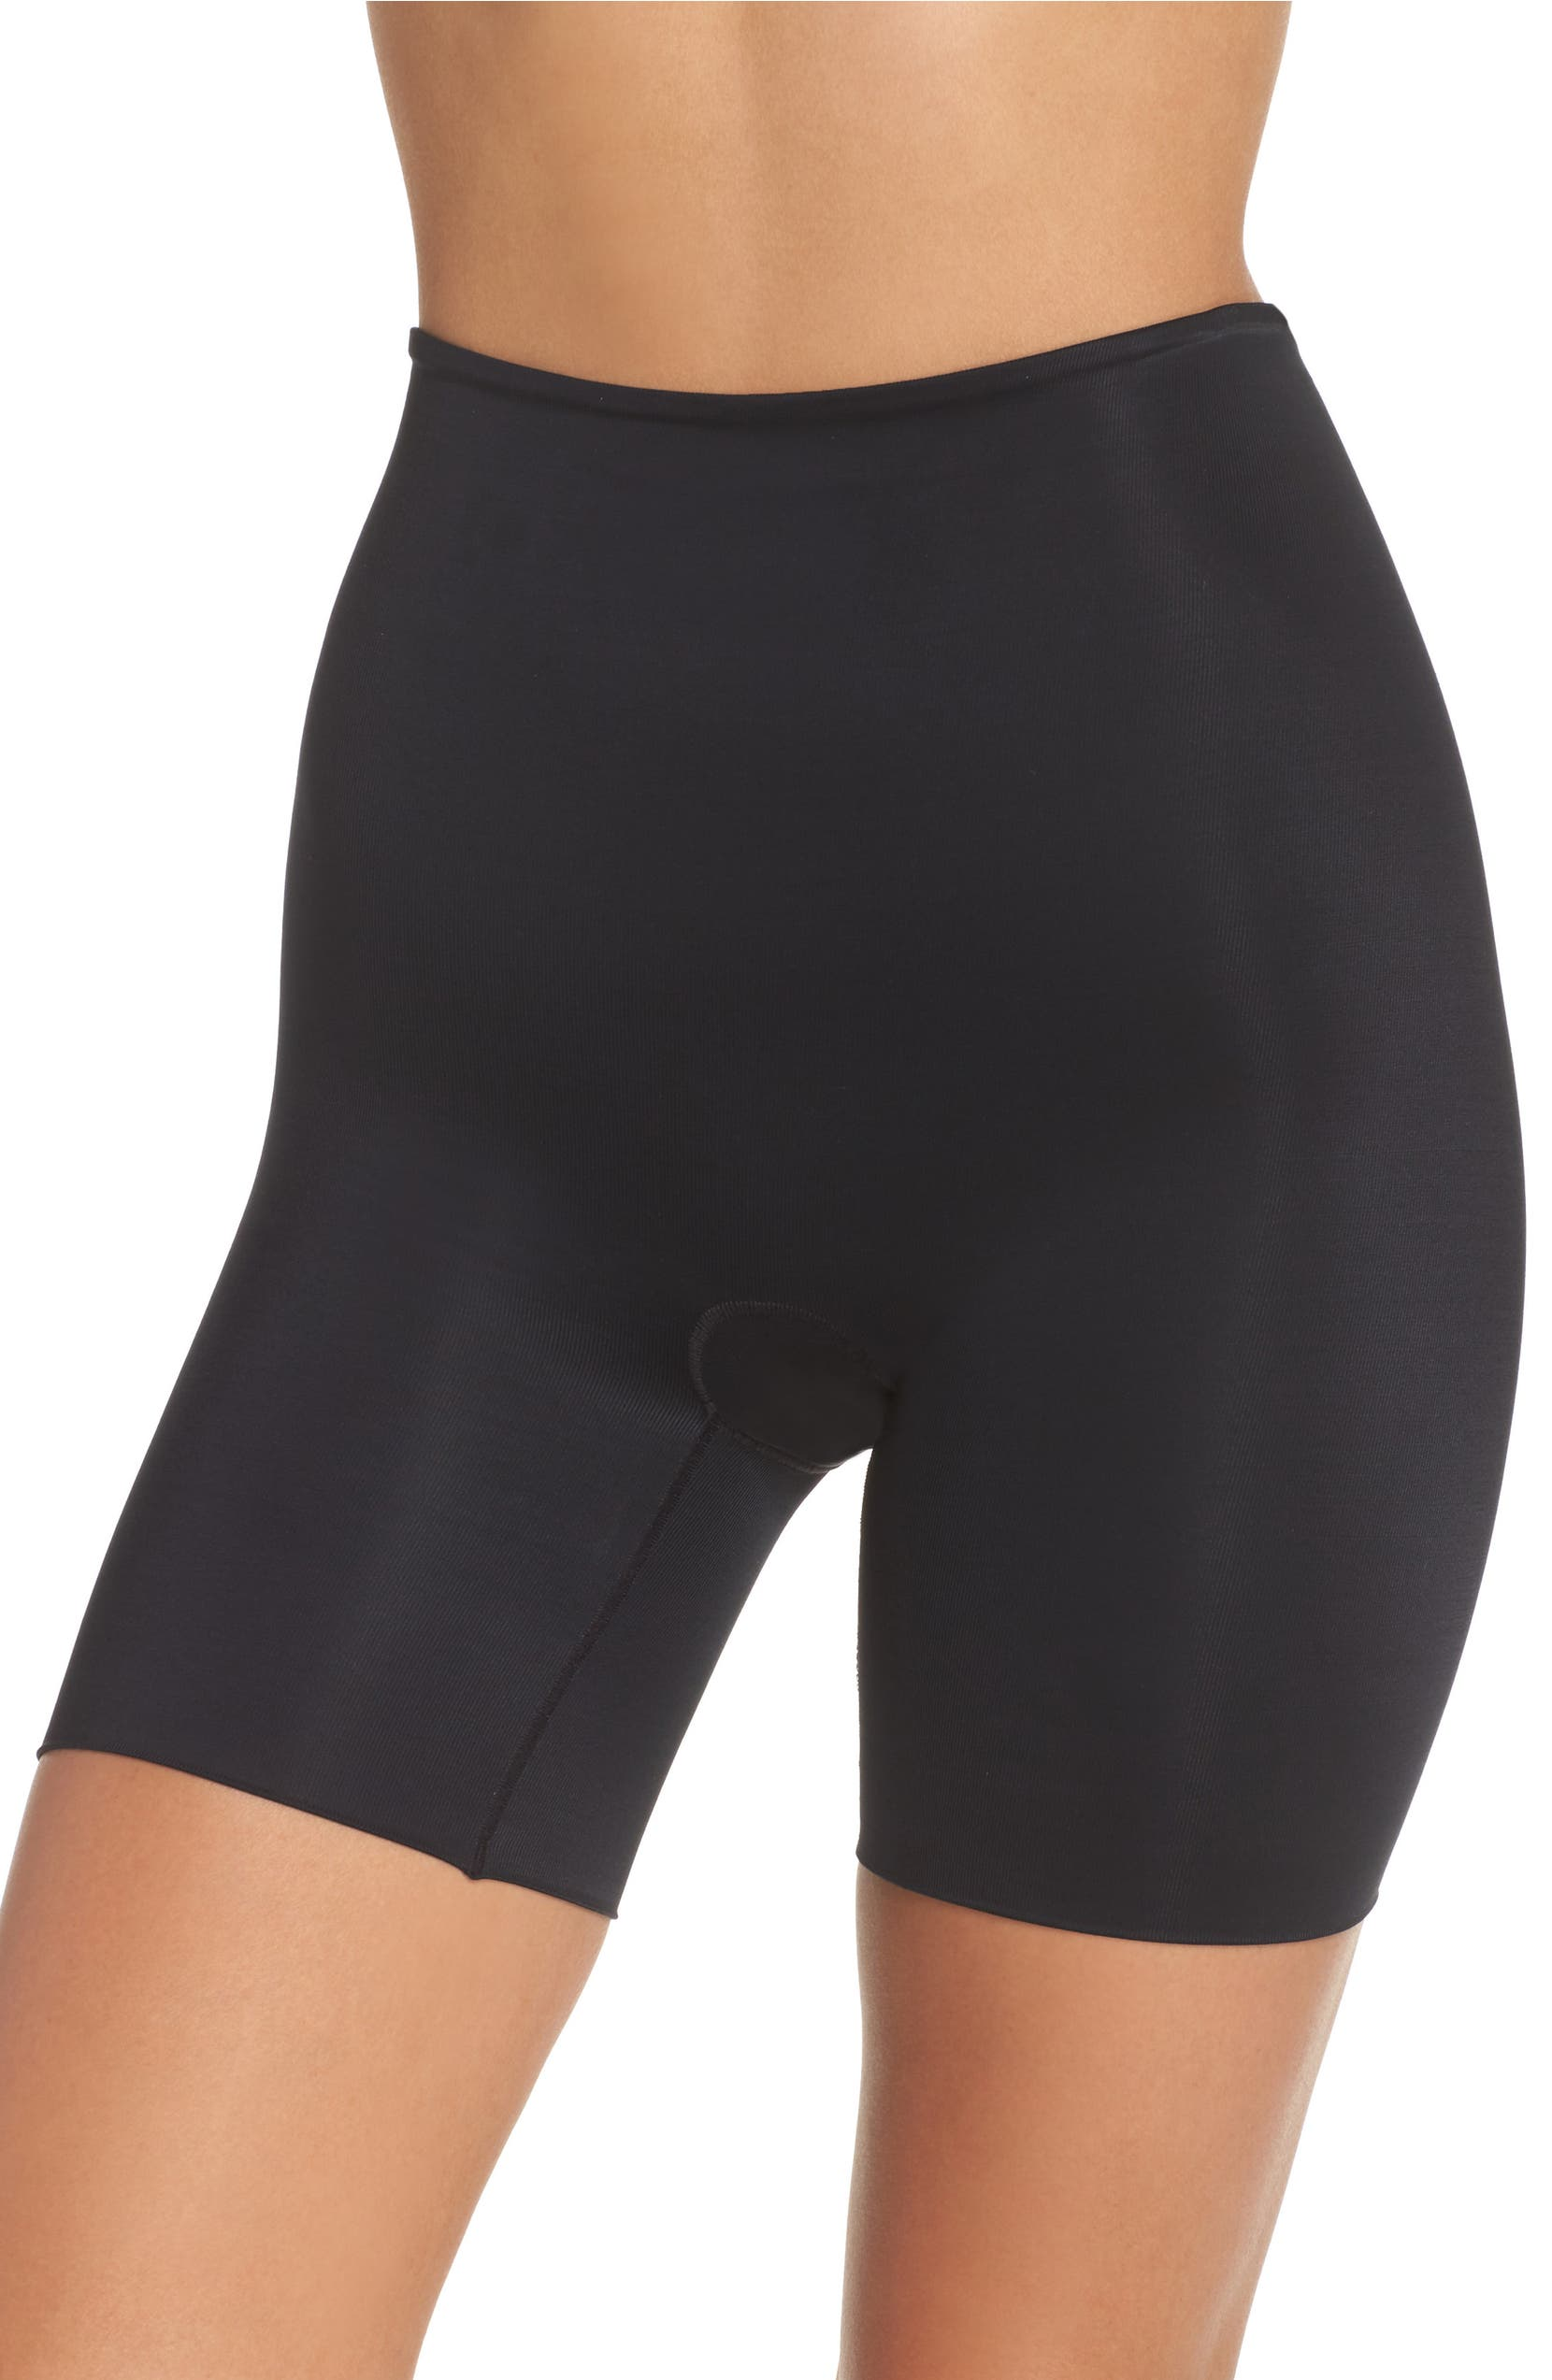 76bdacb389a SPANX® Power Conceal-Her Mid Thigh Shaping Shorts